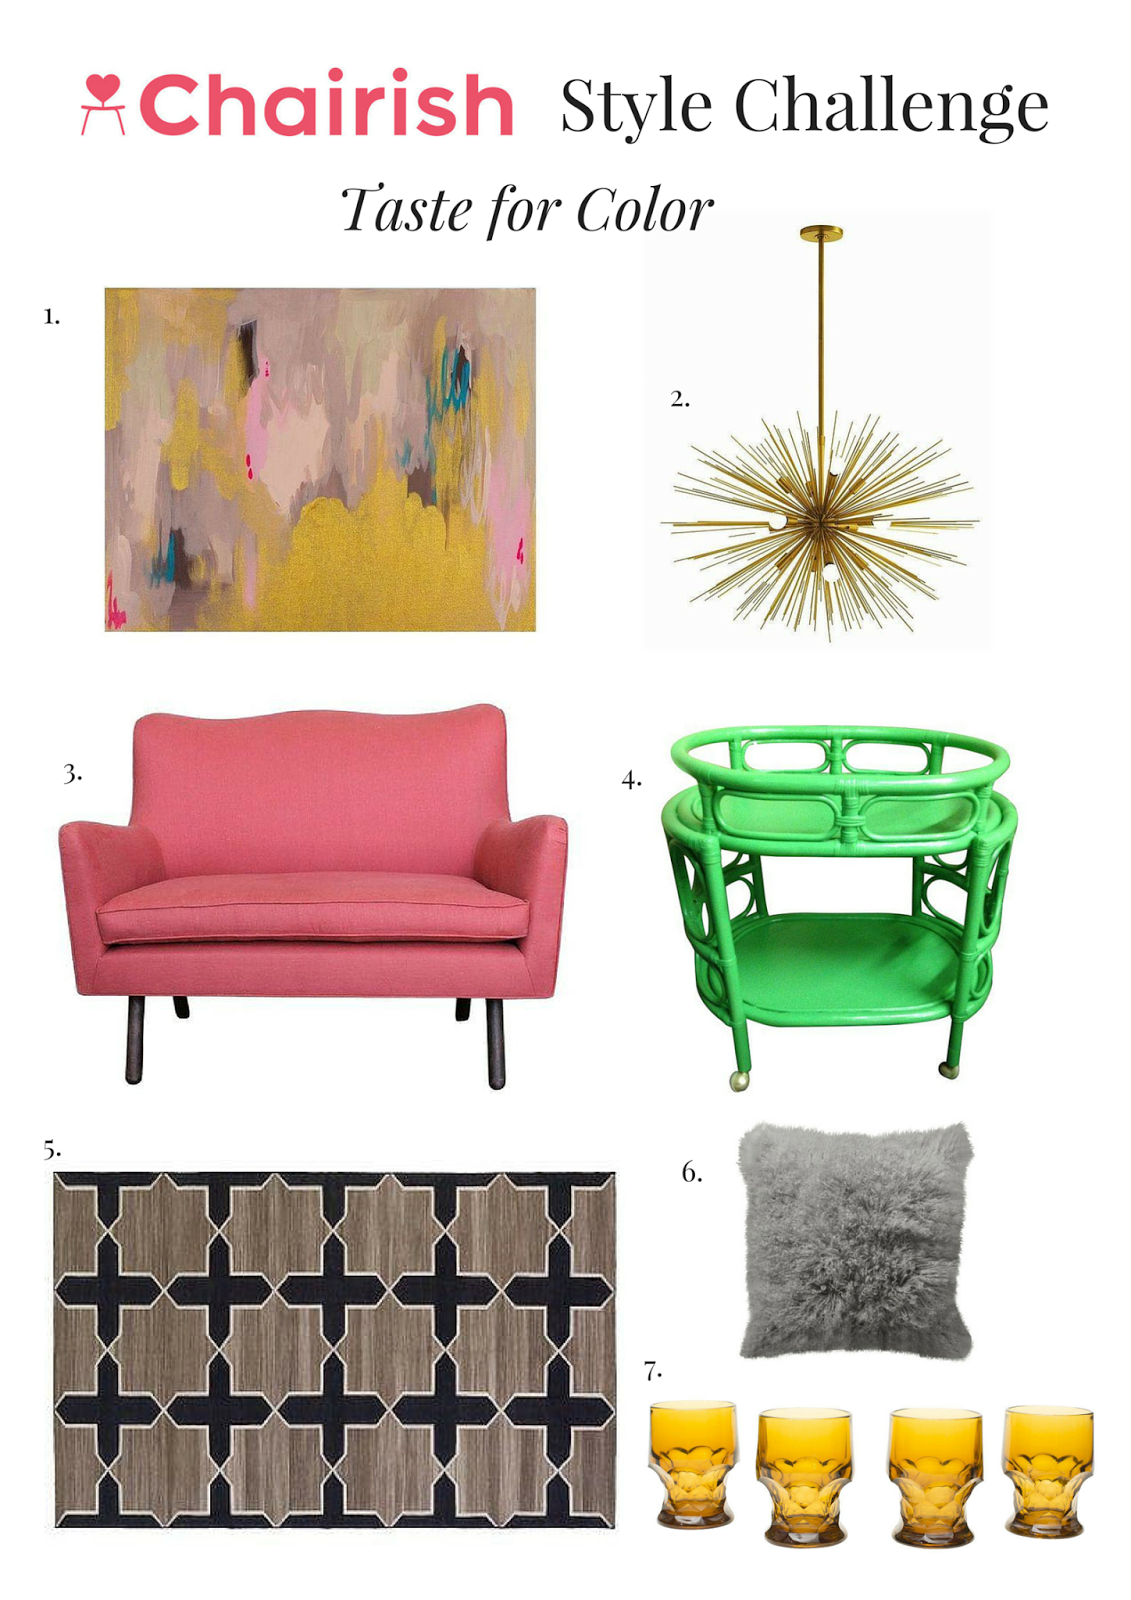 Chairish, Style Challenge, Taste for Color, Color, Interior Design